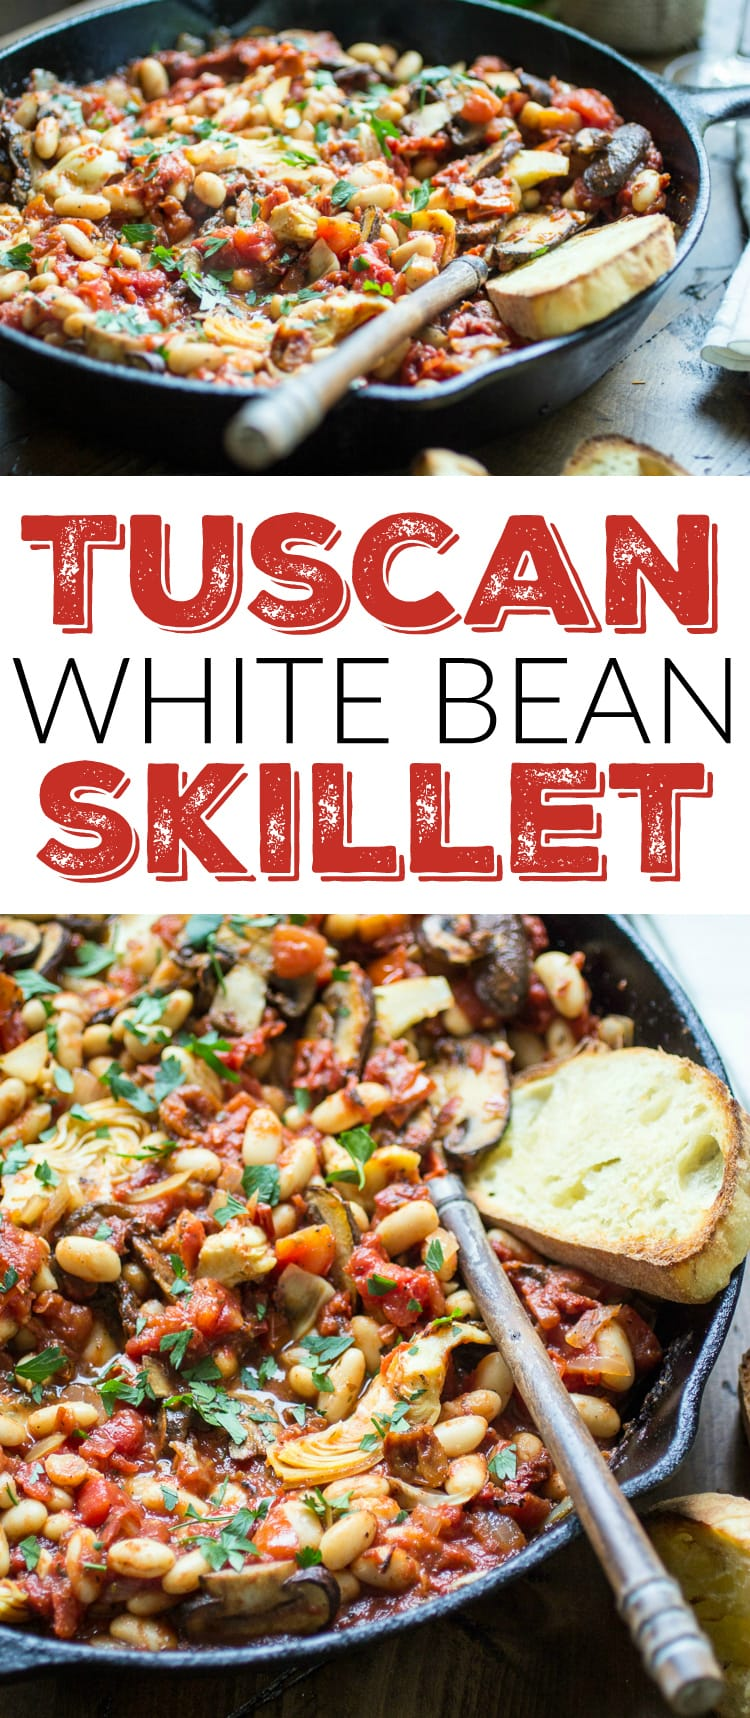 This vegetarian skillet meal is made from pantry staples for a quick weeknight dinner!